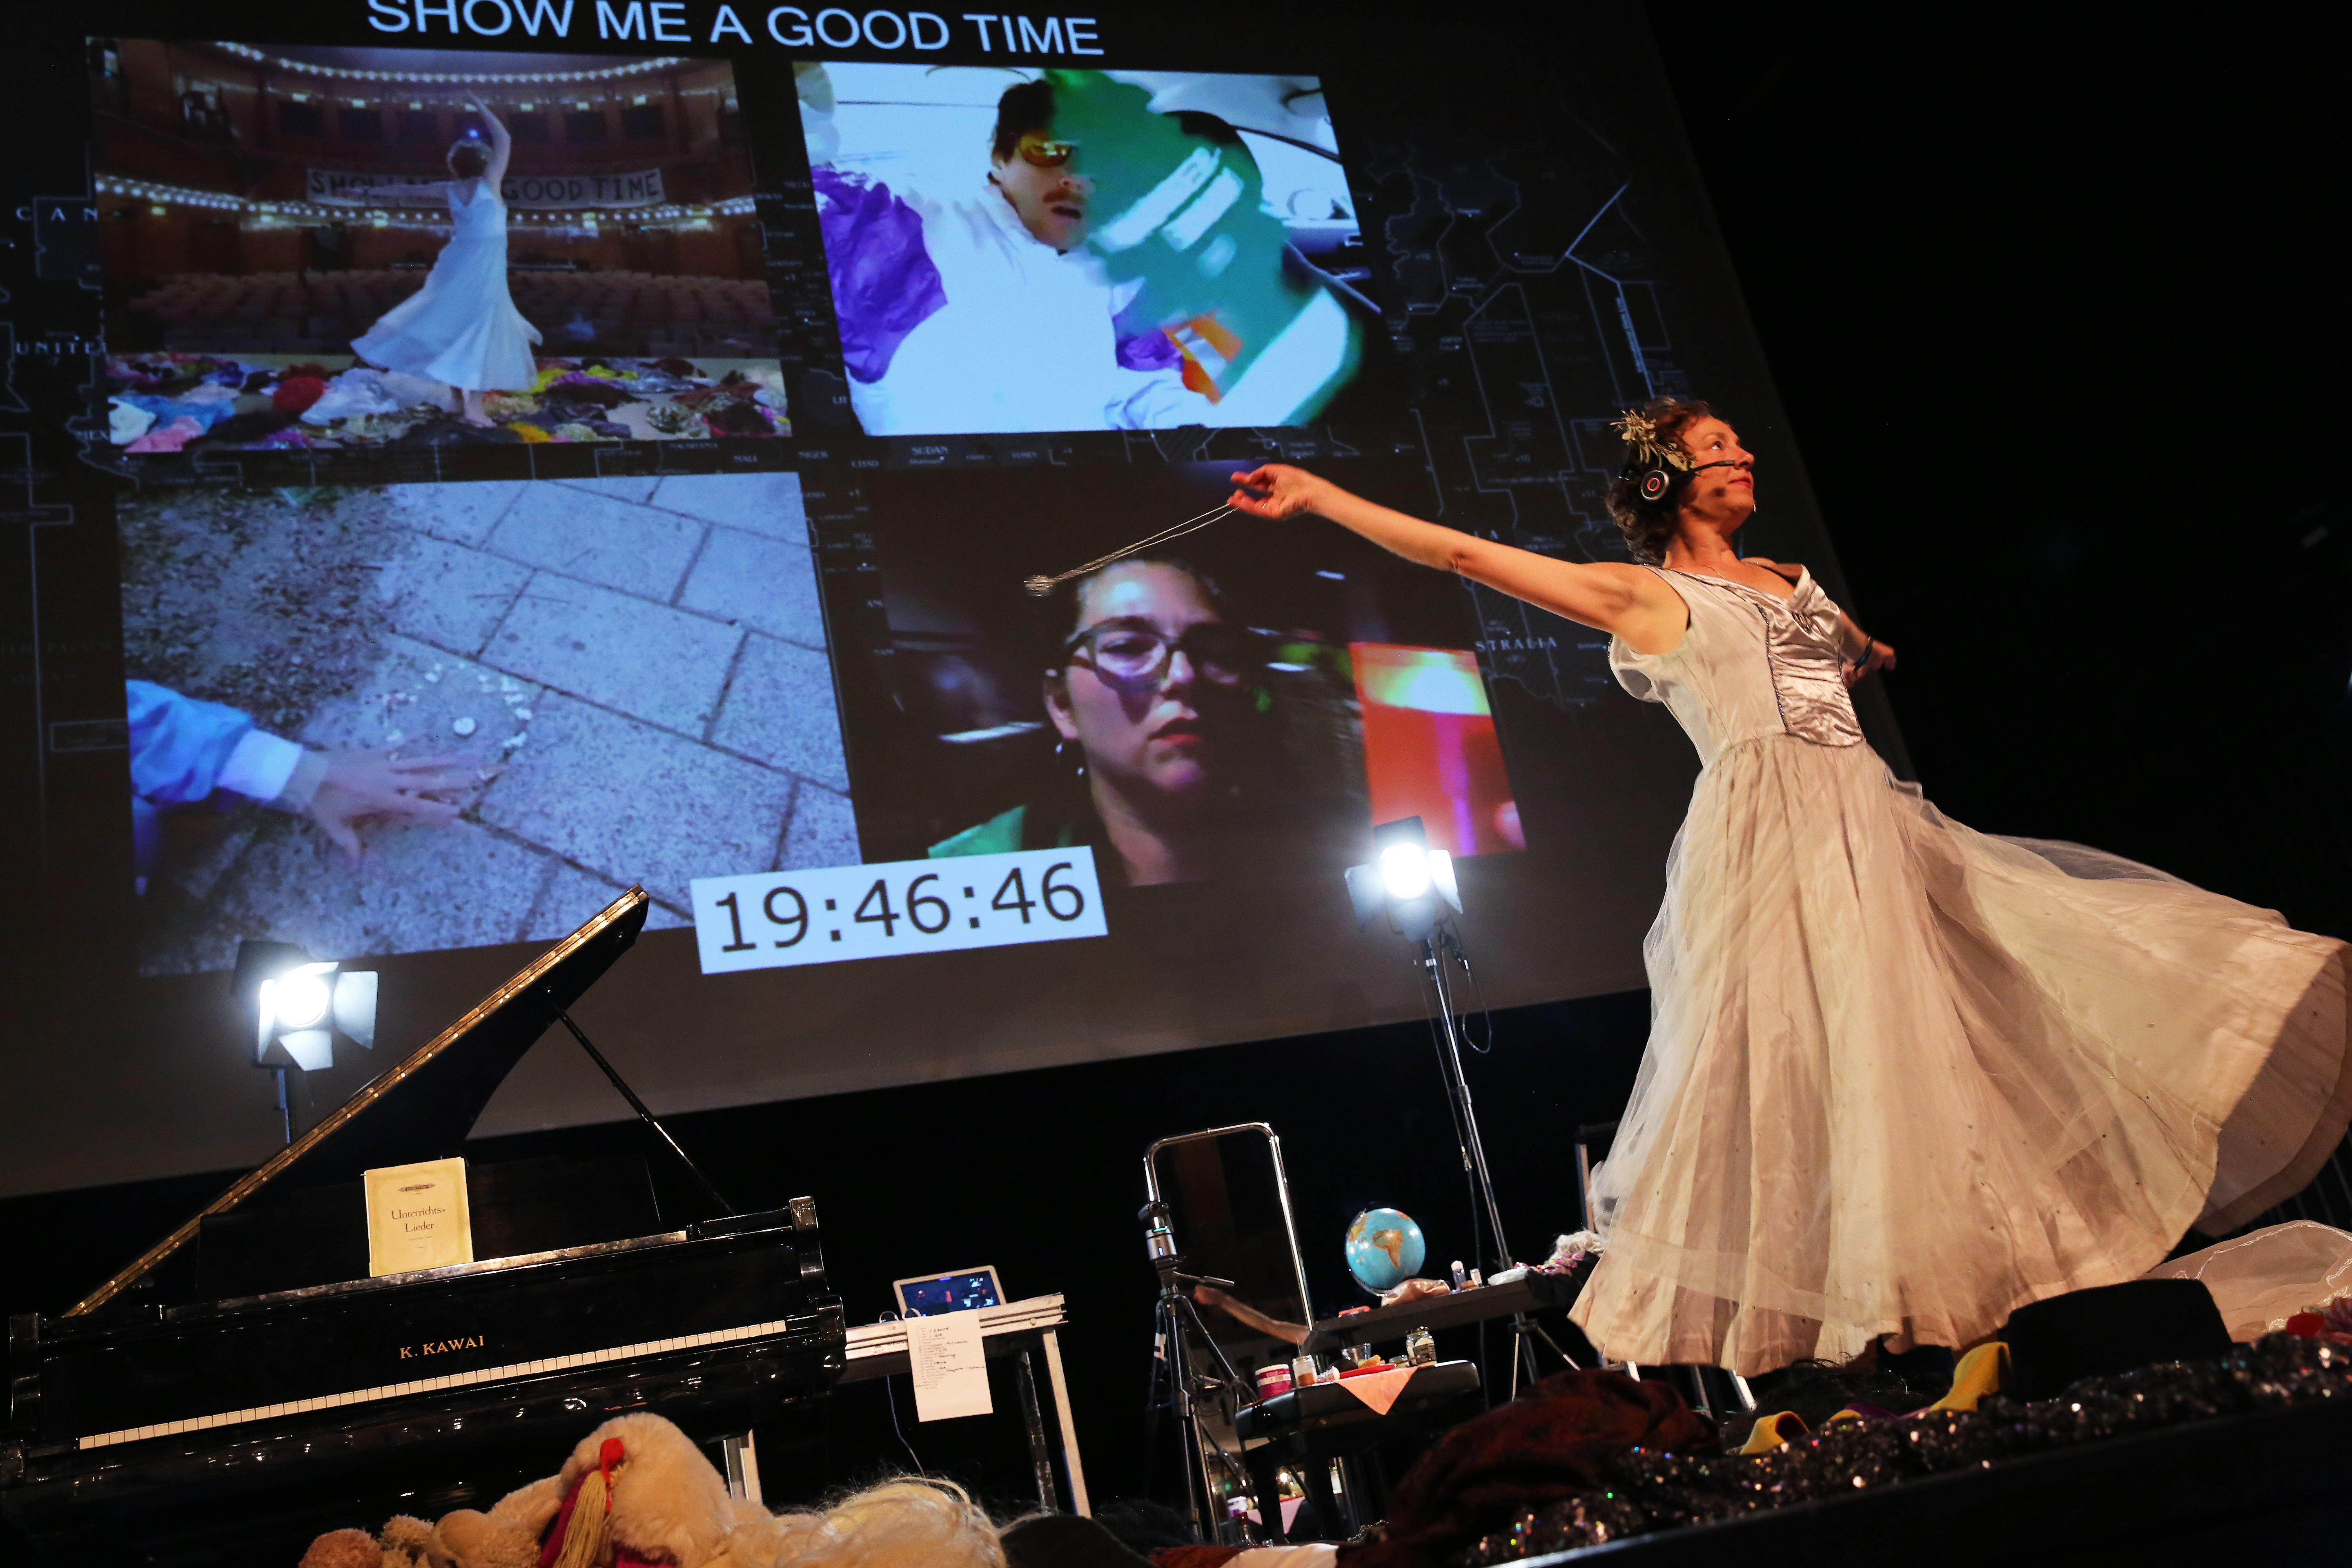 """Performer Berit Stumpf in """"Show Me A Good Time""""."""